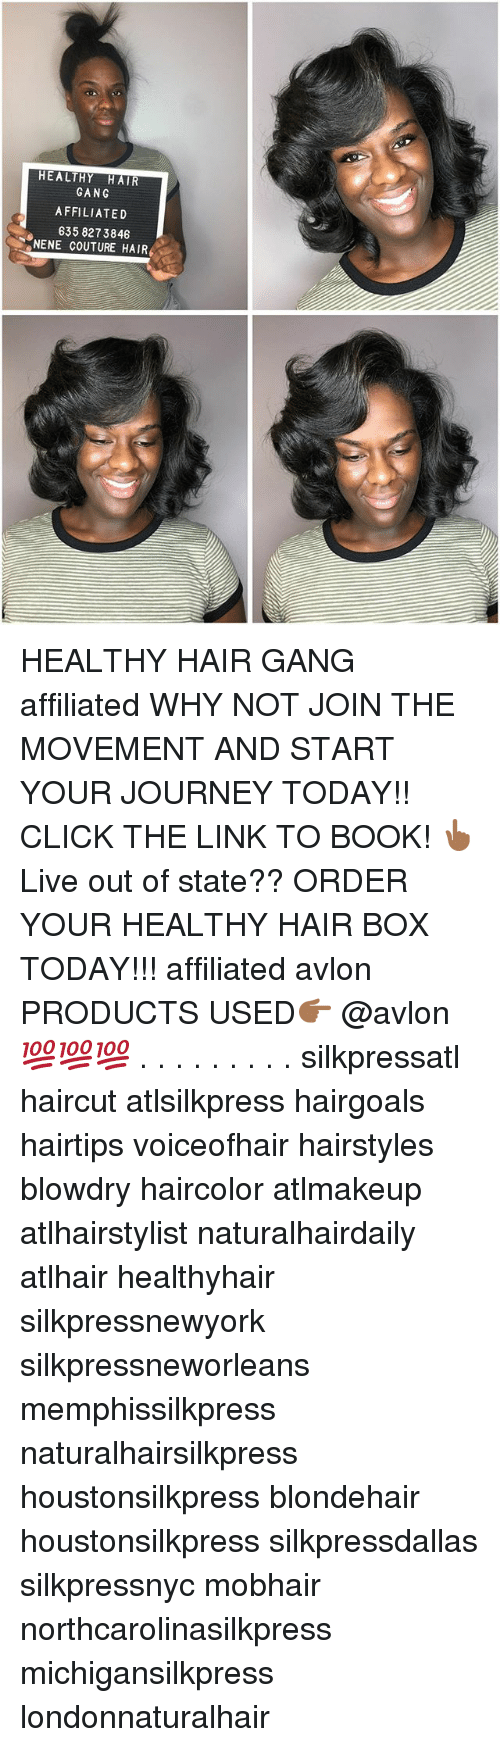 Click, Haircut, and Journey: HEALTHY HAIR  GANG  AFFILIATED  635 827 3846  NENE COUTURE HAIR HEALTHY HAIR GANG affiliated WHY NOT JOIN THE MOVEMENT AND START YOUR JOURNEY TODAY!! CLICK THE LINK TO BOOK! 👆🏾Live out of state?? ORDER YOUR HEALTHY HAIR BOX TODAY!!! affiliated avlon PRODUCTS USED👉🏾 @avlon 💯💯💯 . . . . . . . . . silkpressatl haircut atlsilkpress hairgoals hairtips voiceofhair hairstyles blowdry haircolor atlmakeup atlhairstylist naturalhairdaily atlhair healthyhair silkpressnewyork silkpressneworleans memphissilkpress naturalhairsilkpress houstonsilkpress blondehair houstonsilkpress silkpressdallas silkpressnyc mobhair northcarolinasilkpress michigansilkpress londonnaturalhair